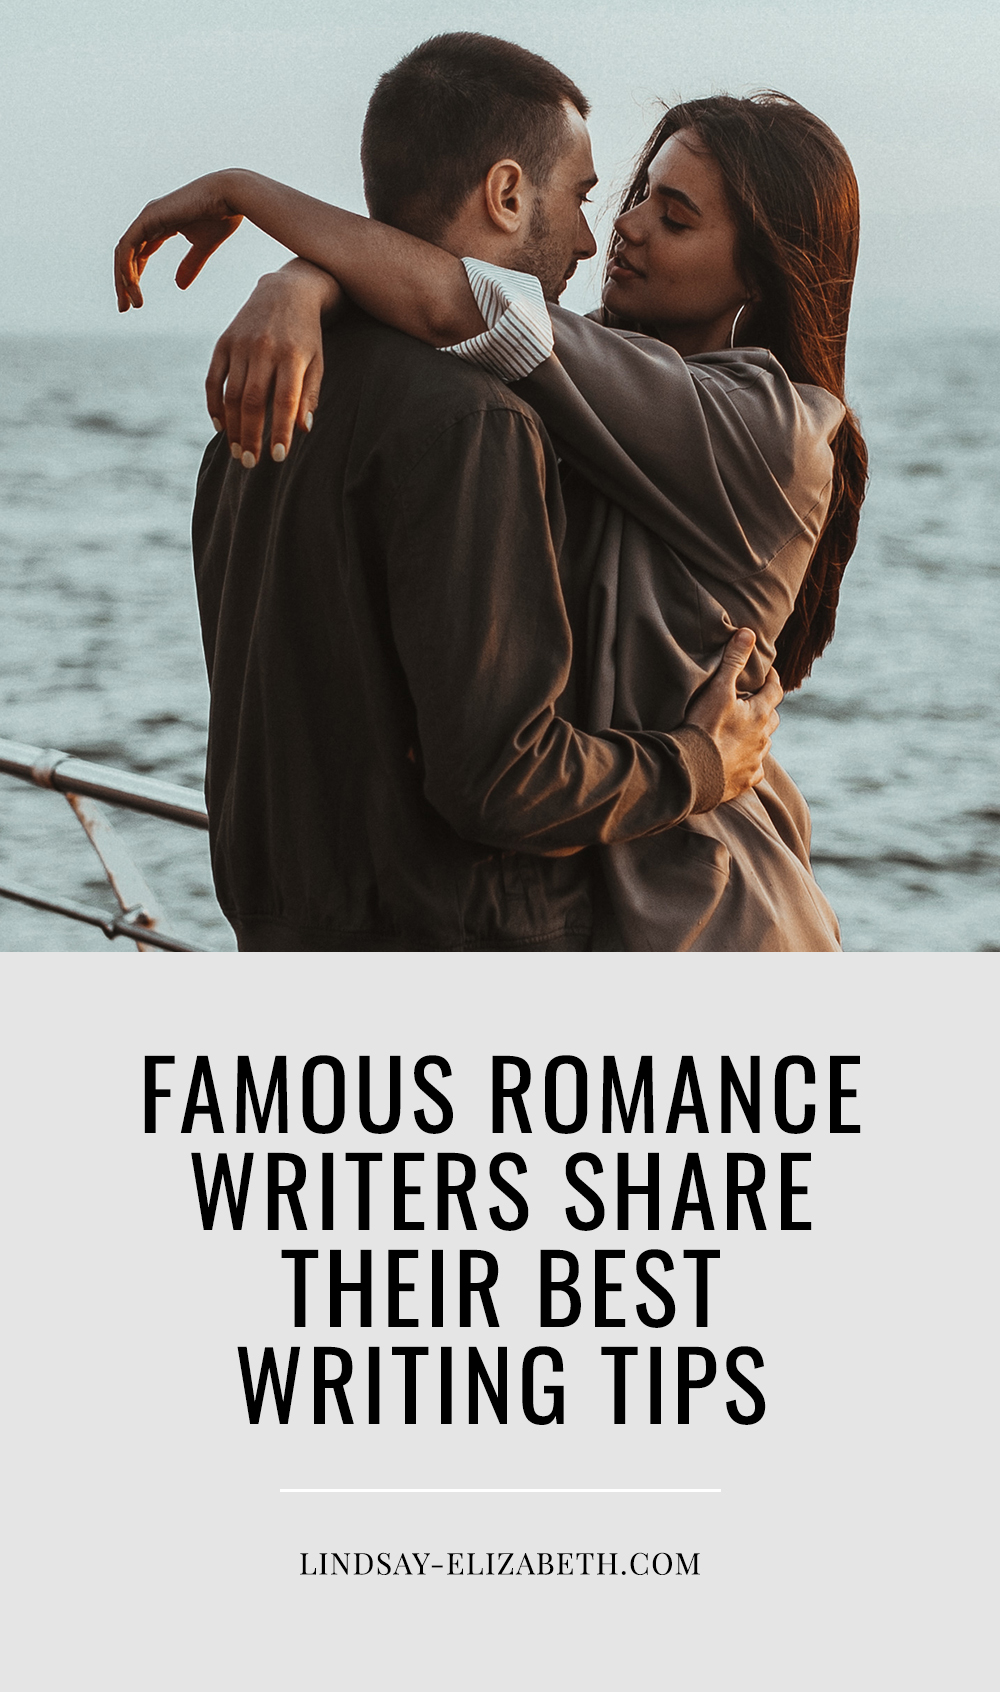 Find out how some of the most successful romance authors and screenwriters approach the craft and have created some of the most popular romances of all time, from bestsellers to blockbusters. They talk about their writing process, how to write a romance, and other writing tips for aspiring authors. #writingtips #writingadvice #writingromance #romanceauthors #romancenovels